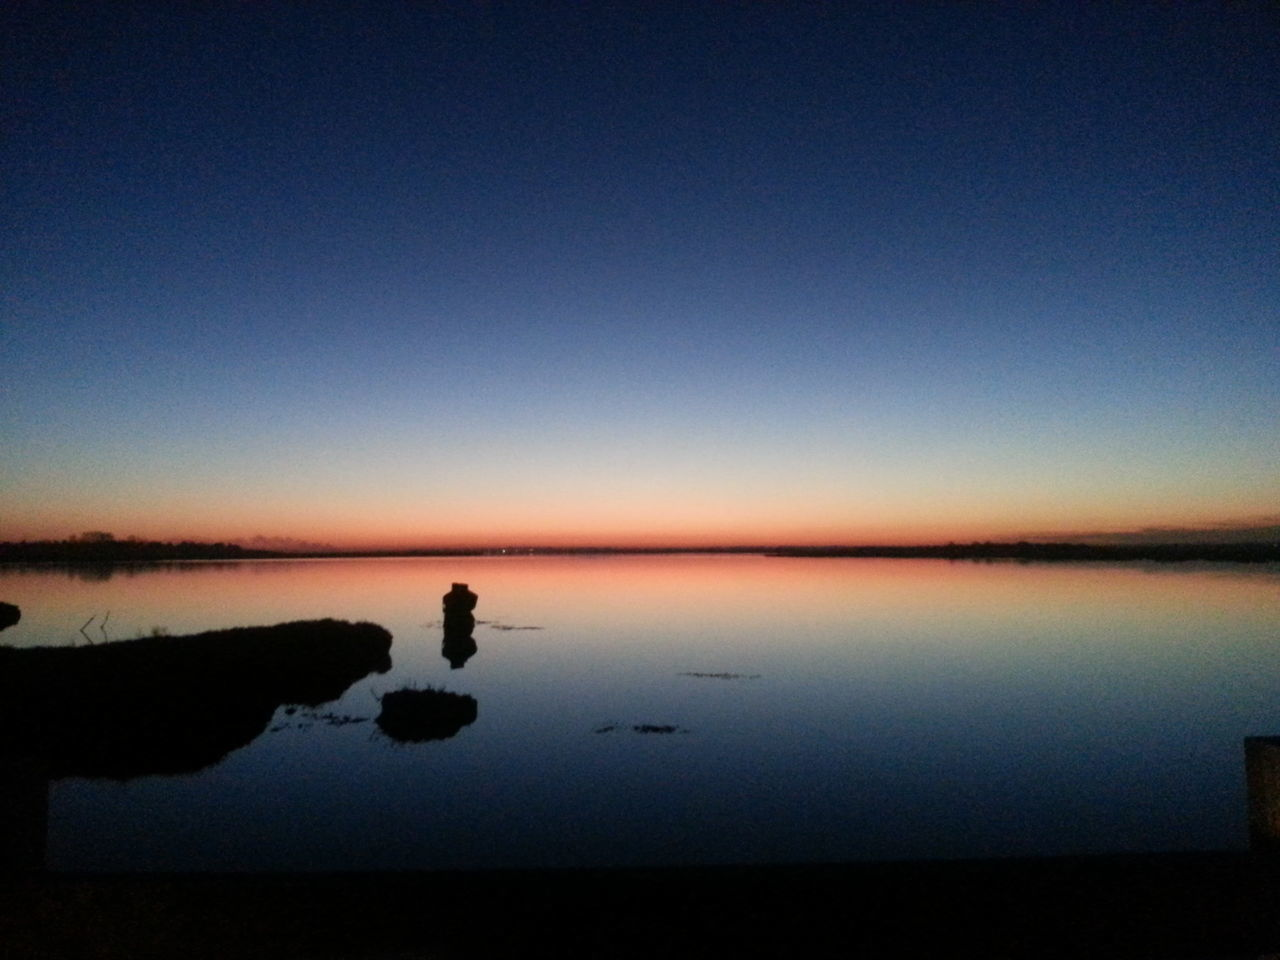 Taken on the Mersea Strood at dusk Reflection Sunset Water Sky Blue Silhouette Tranquility Scenics Lake Beauty In Nature Standing Water Horizon Over Water Nature Clear Sky Beach Outdoors Salt - Mineral First Eyeem Photo